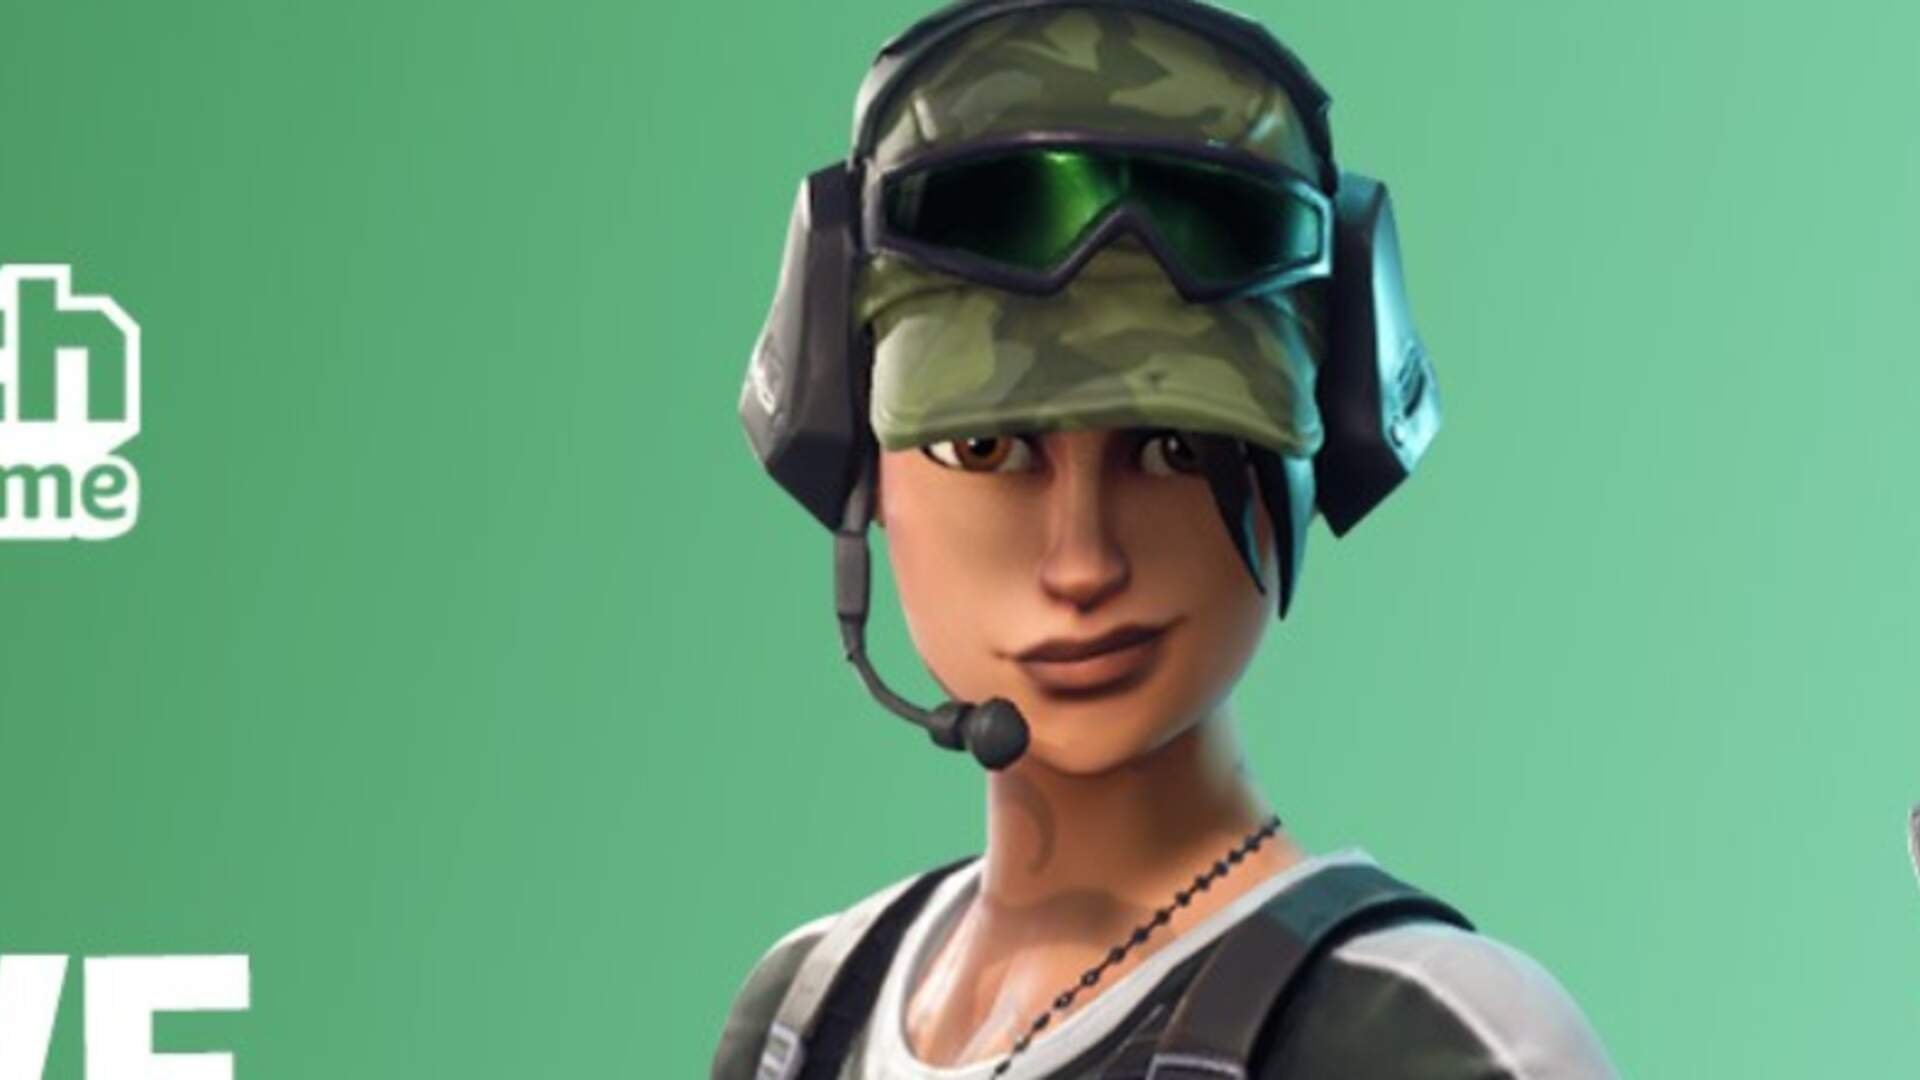 How To Claim The Free Fortnite Twitch Prime Pack 2 Loot And Skin Usgamer